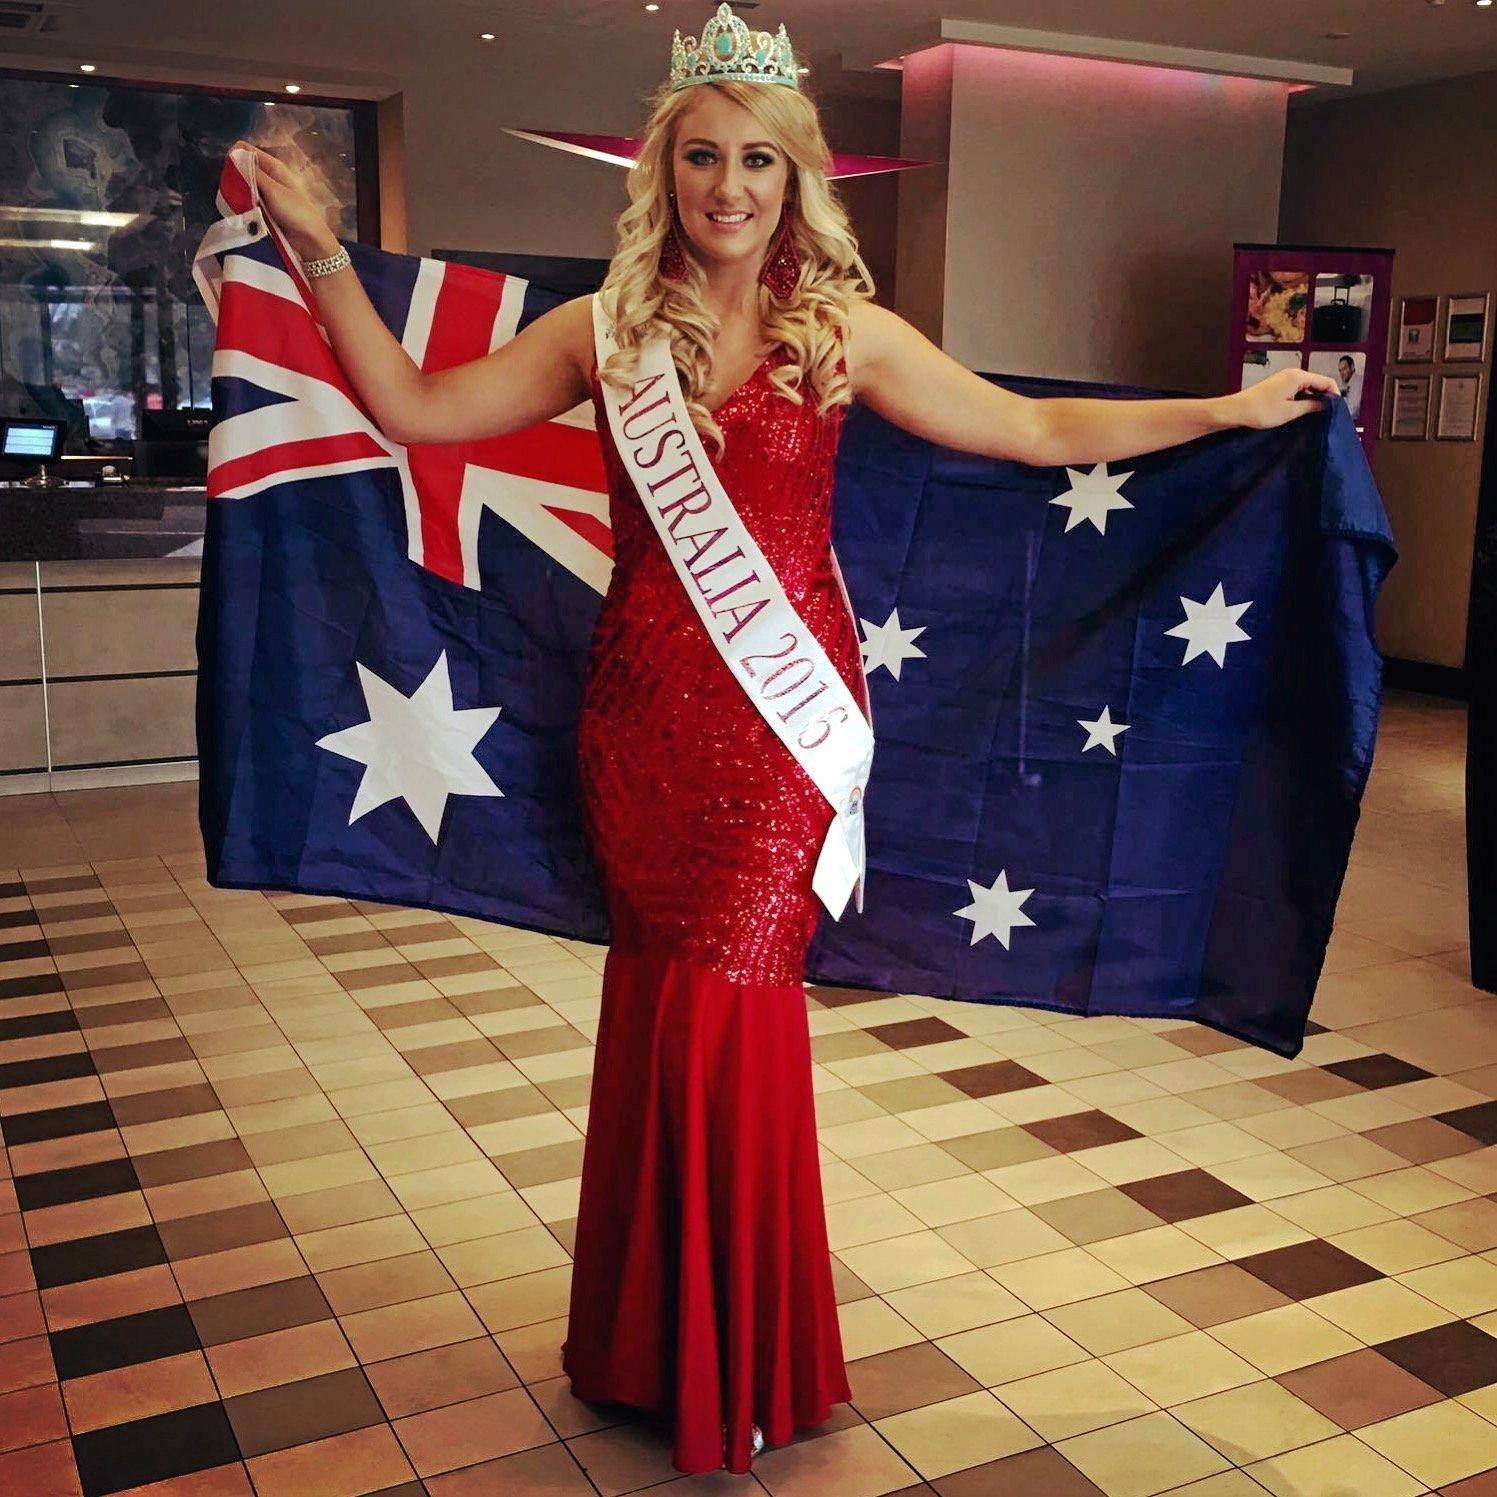 Erin Stanfield has been crowned Face of the Globe.